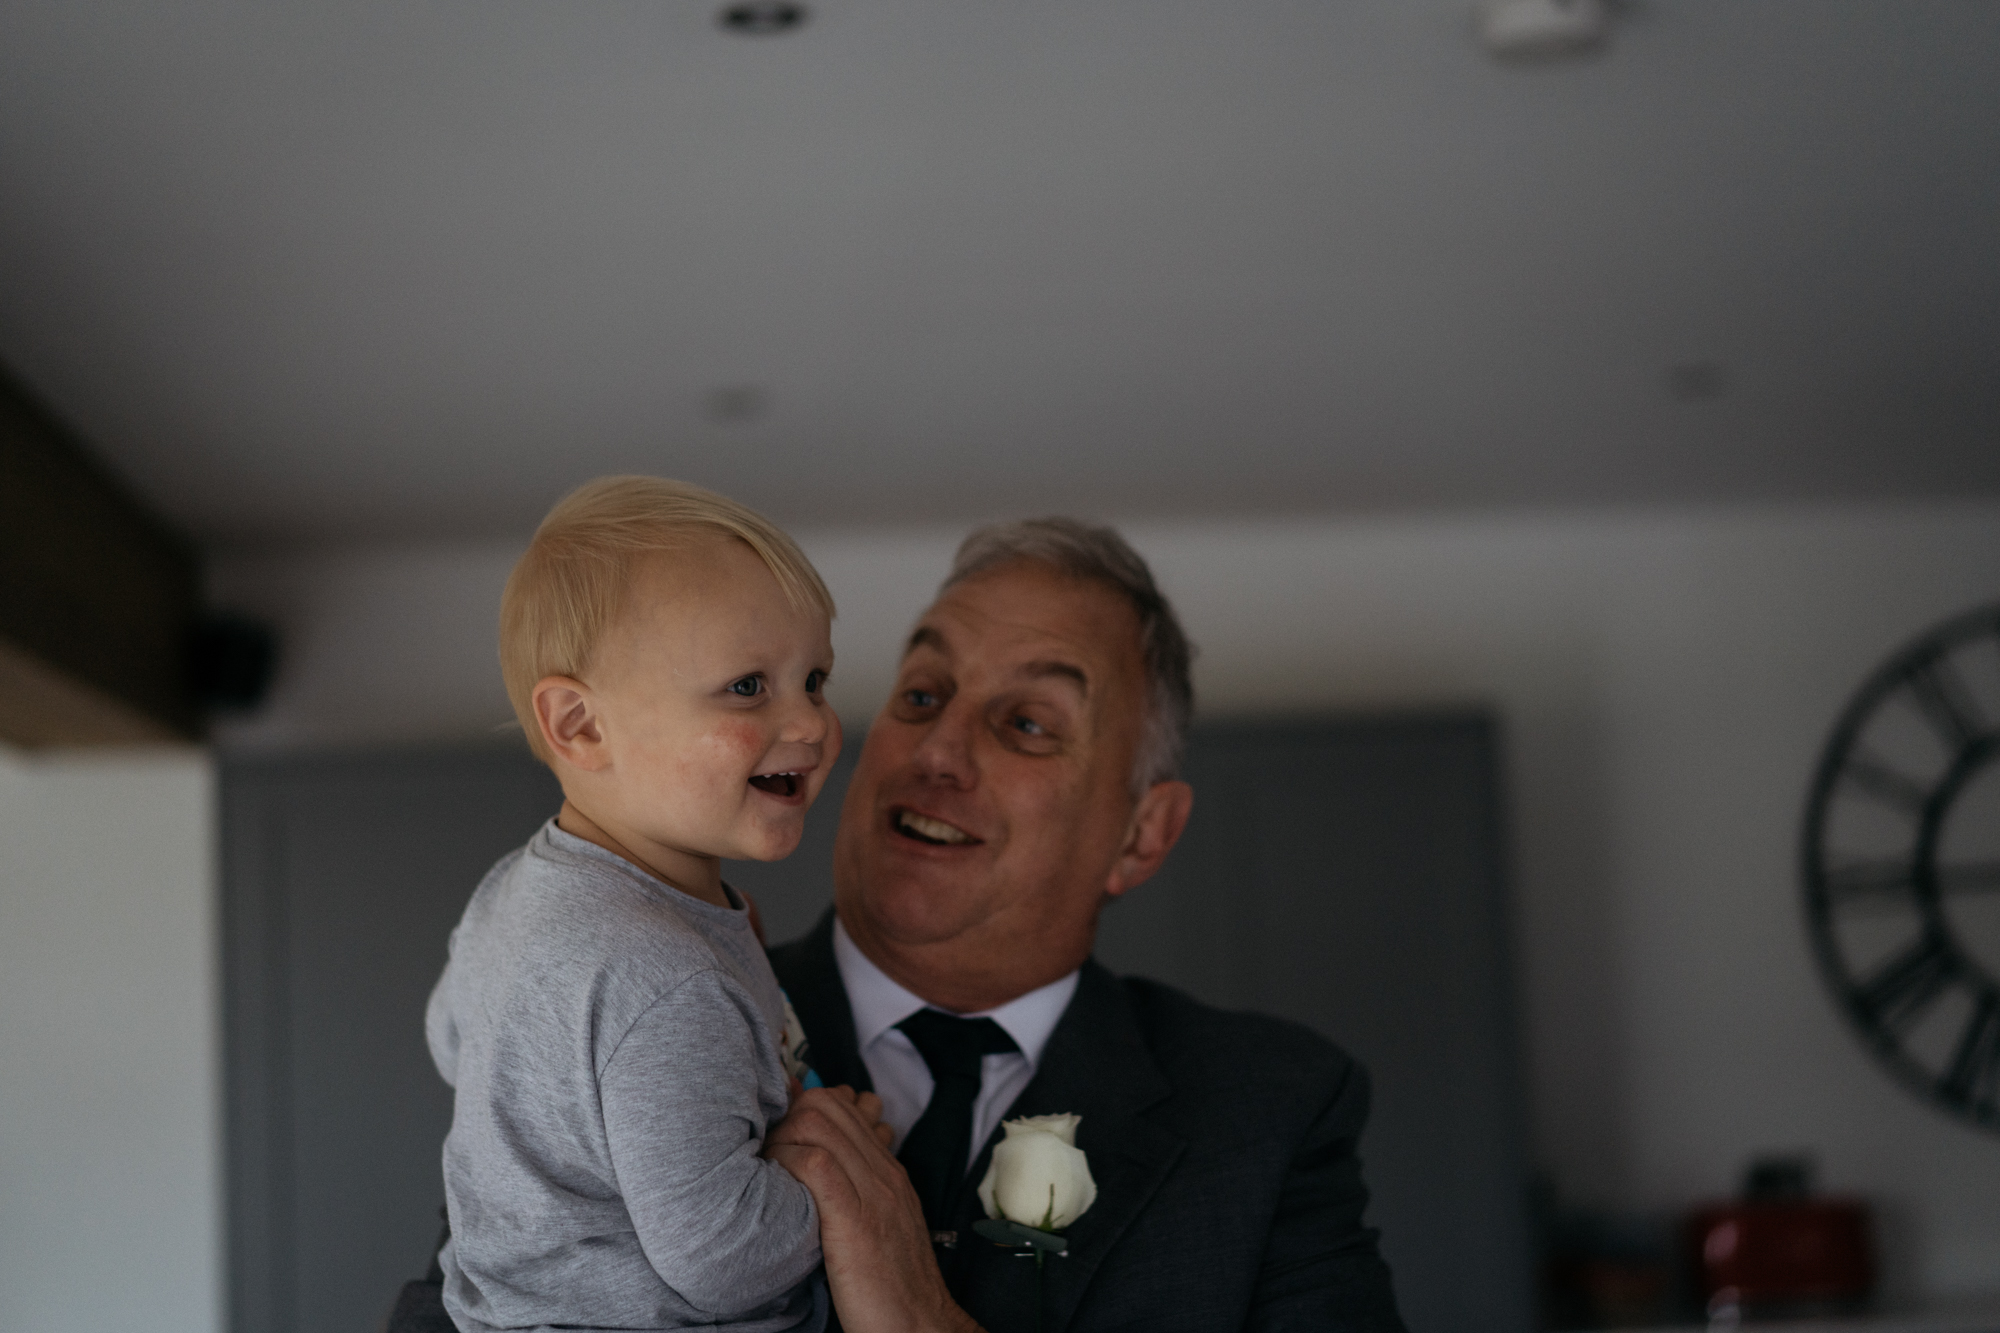 A little boy happy to be with his grandfather